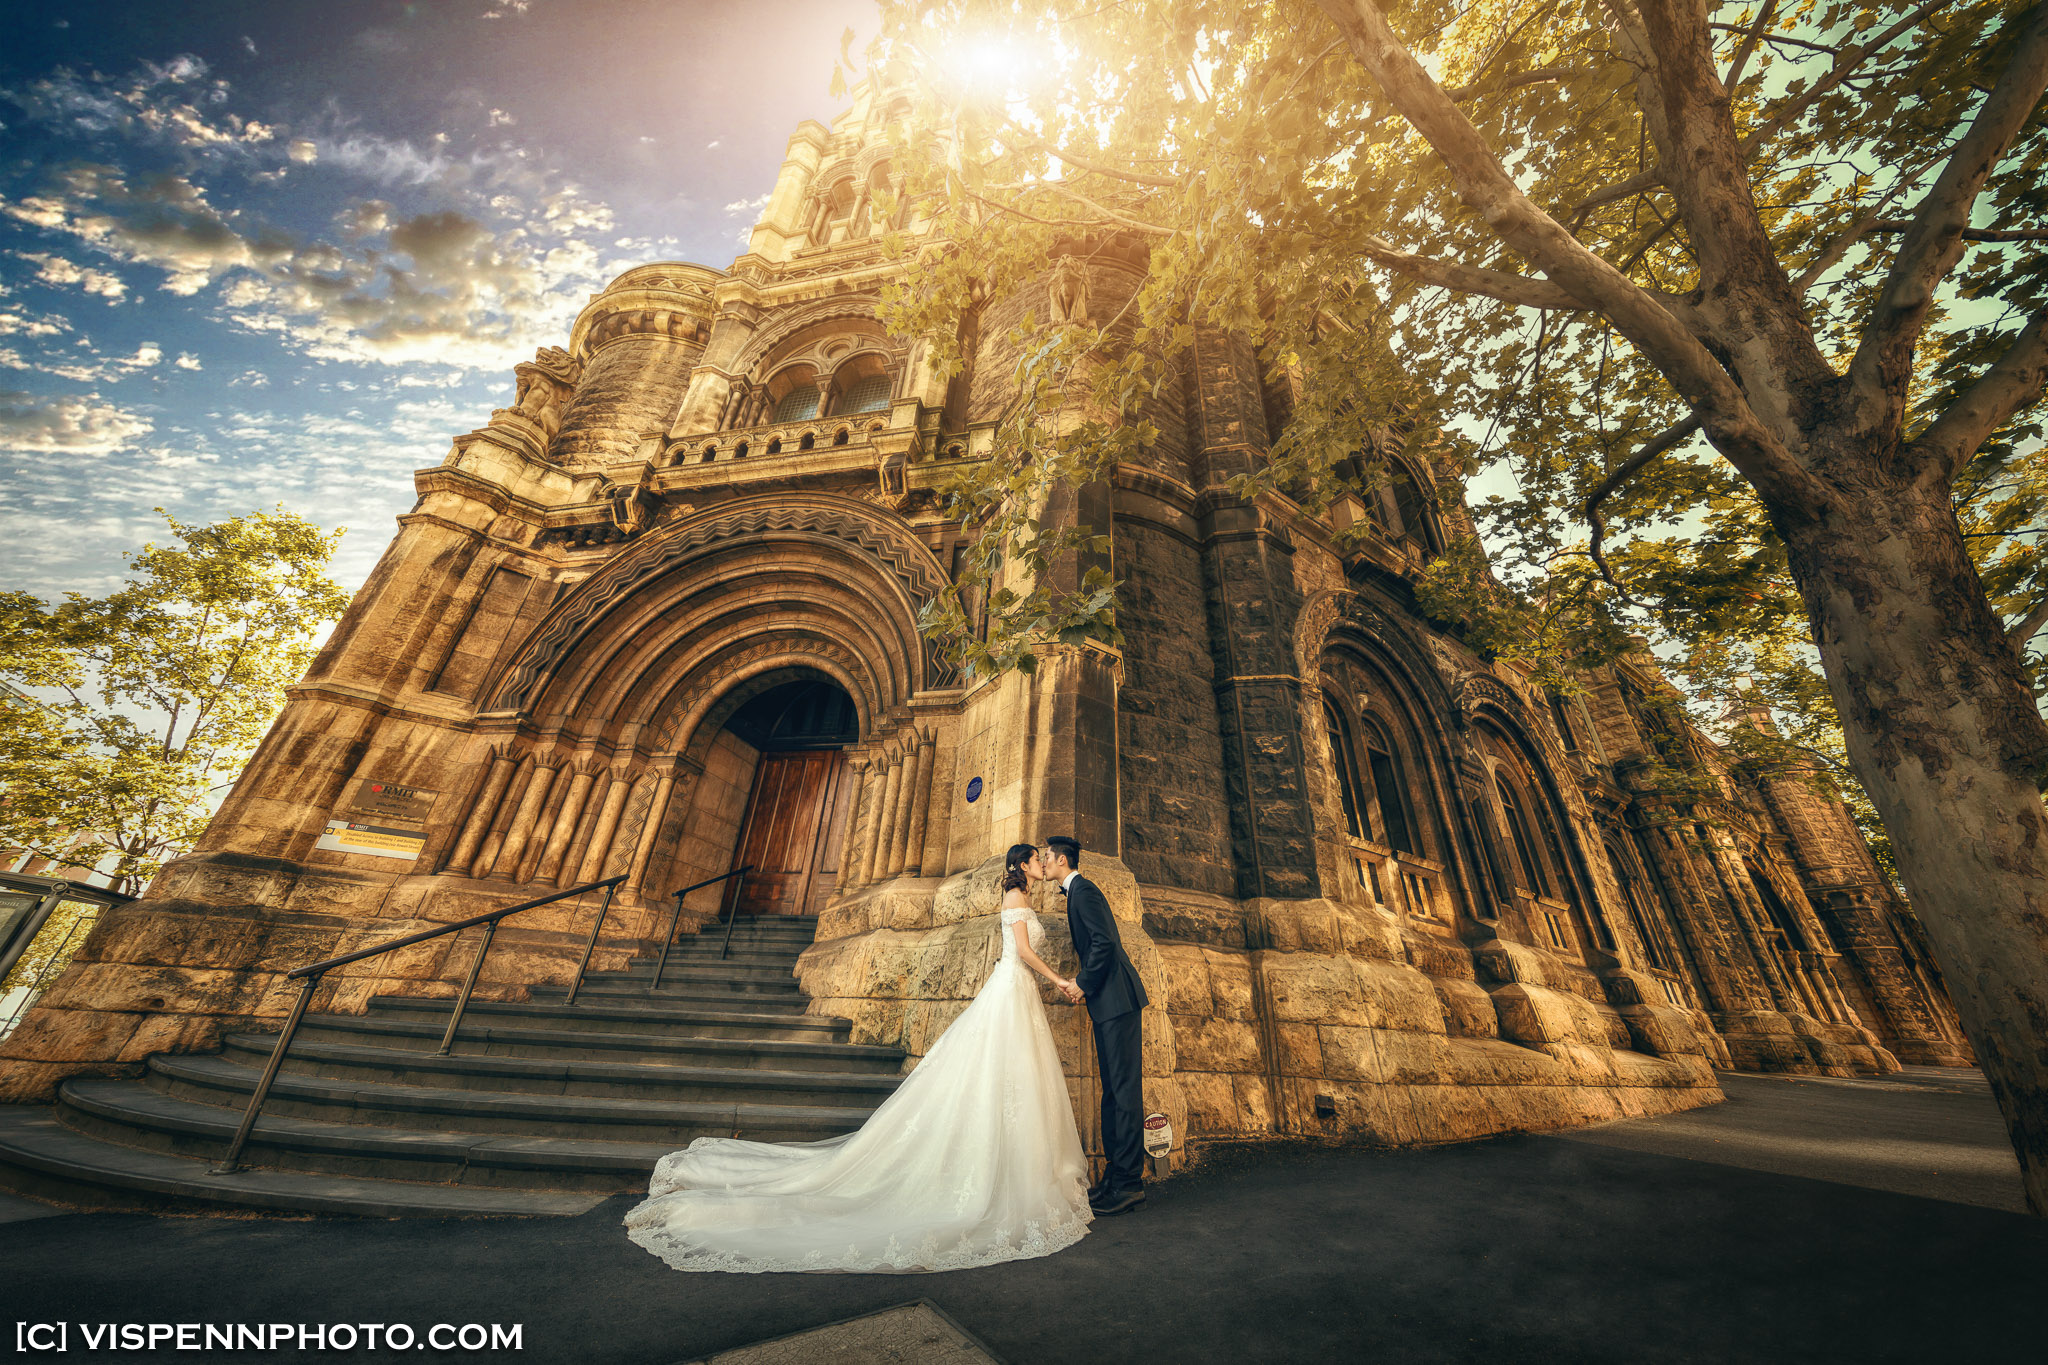 PRE WEDDING Photography Melbourne ZHPENN Cindi 1277 1